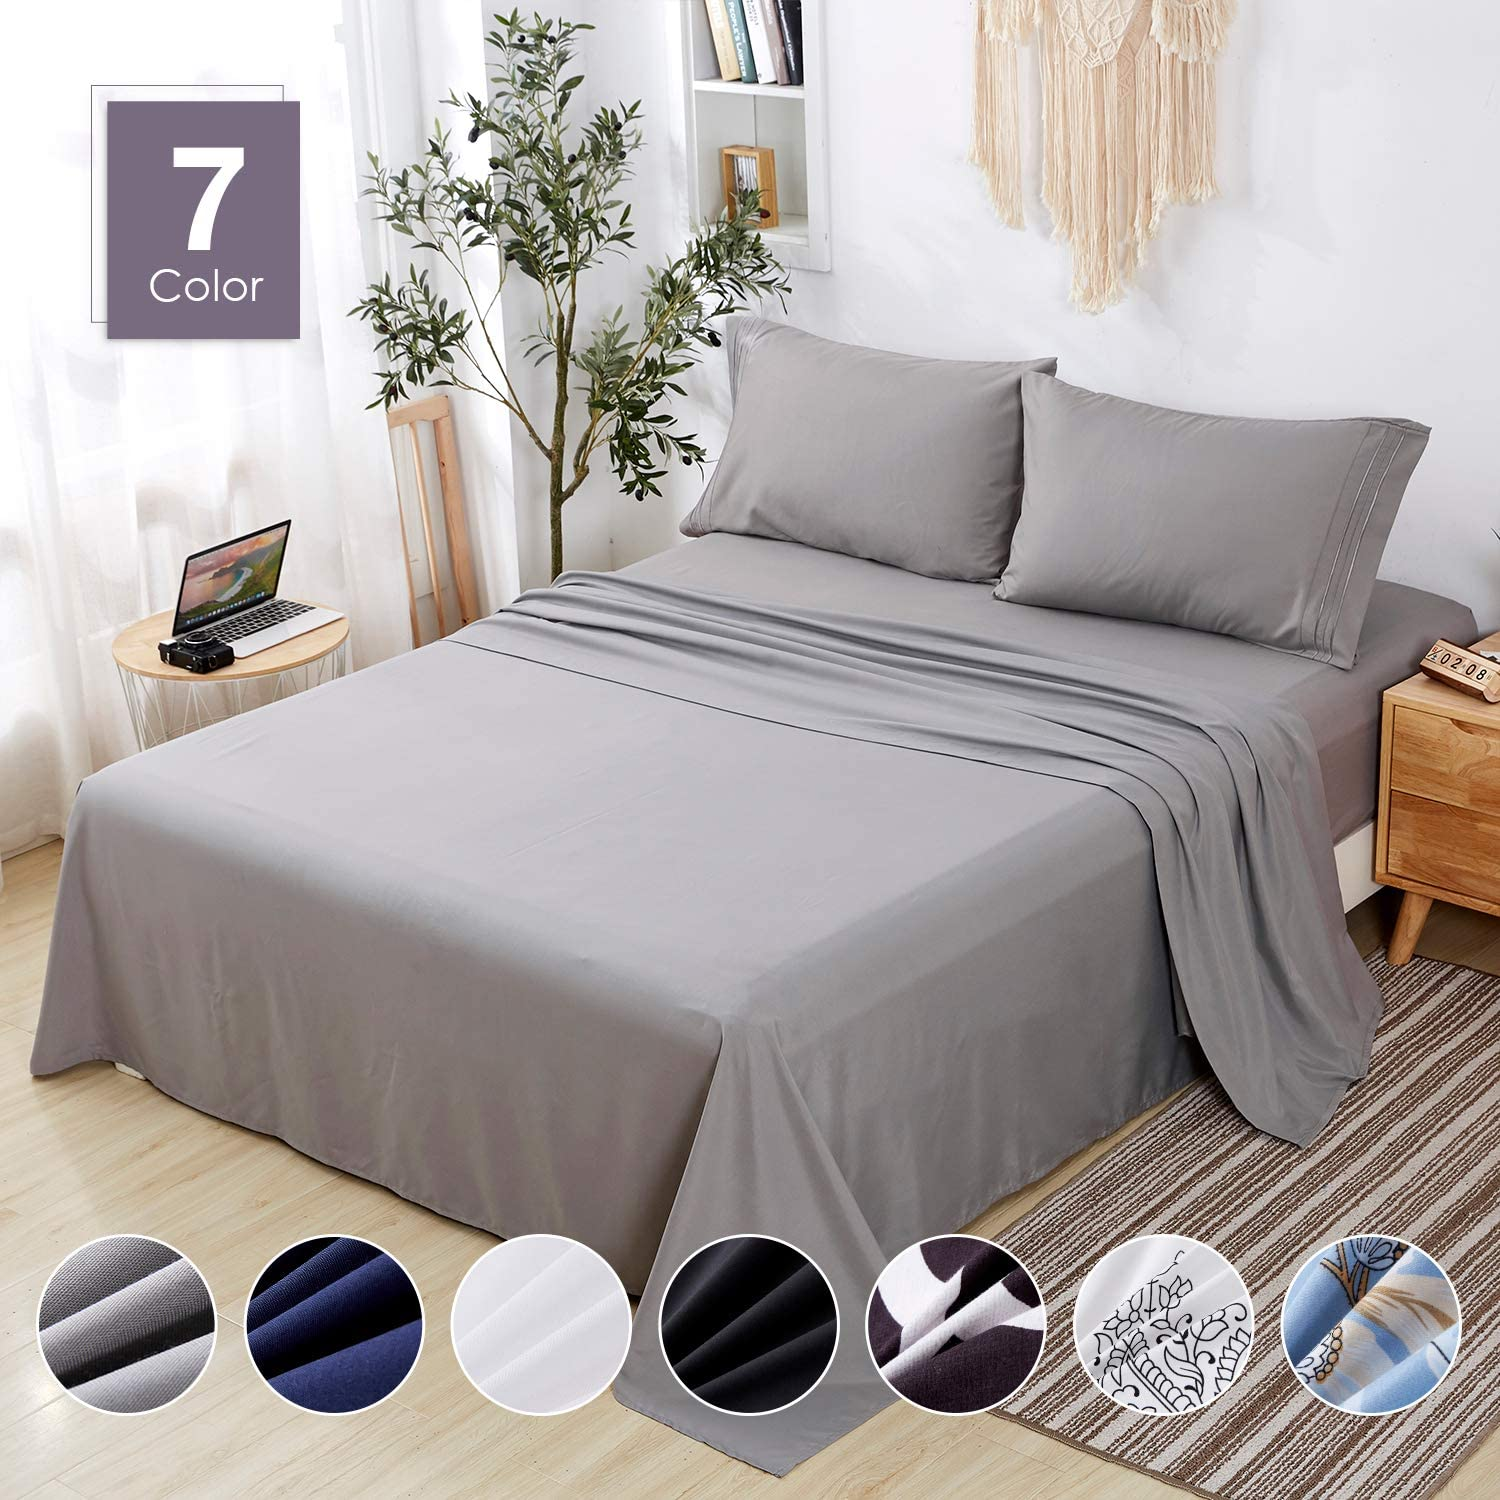 Agedate 4 Piece Brushed Microfiber Bed Sheets Set, Deep Pocket Bed Sheets King, Hypoallergenic, Easy to Care, Fade, Stain and Wrinkle Resistant, King Size, Grey